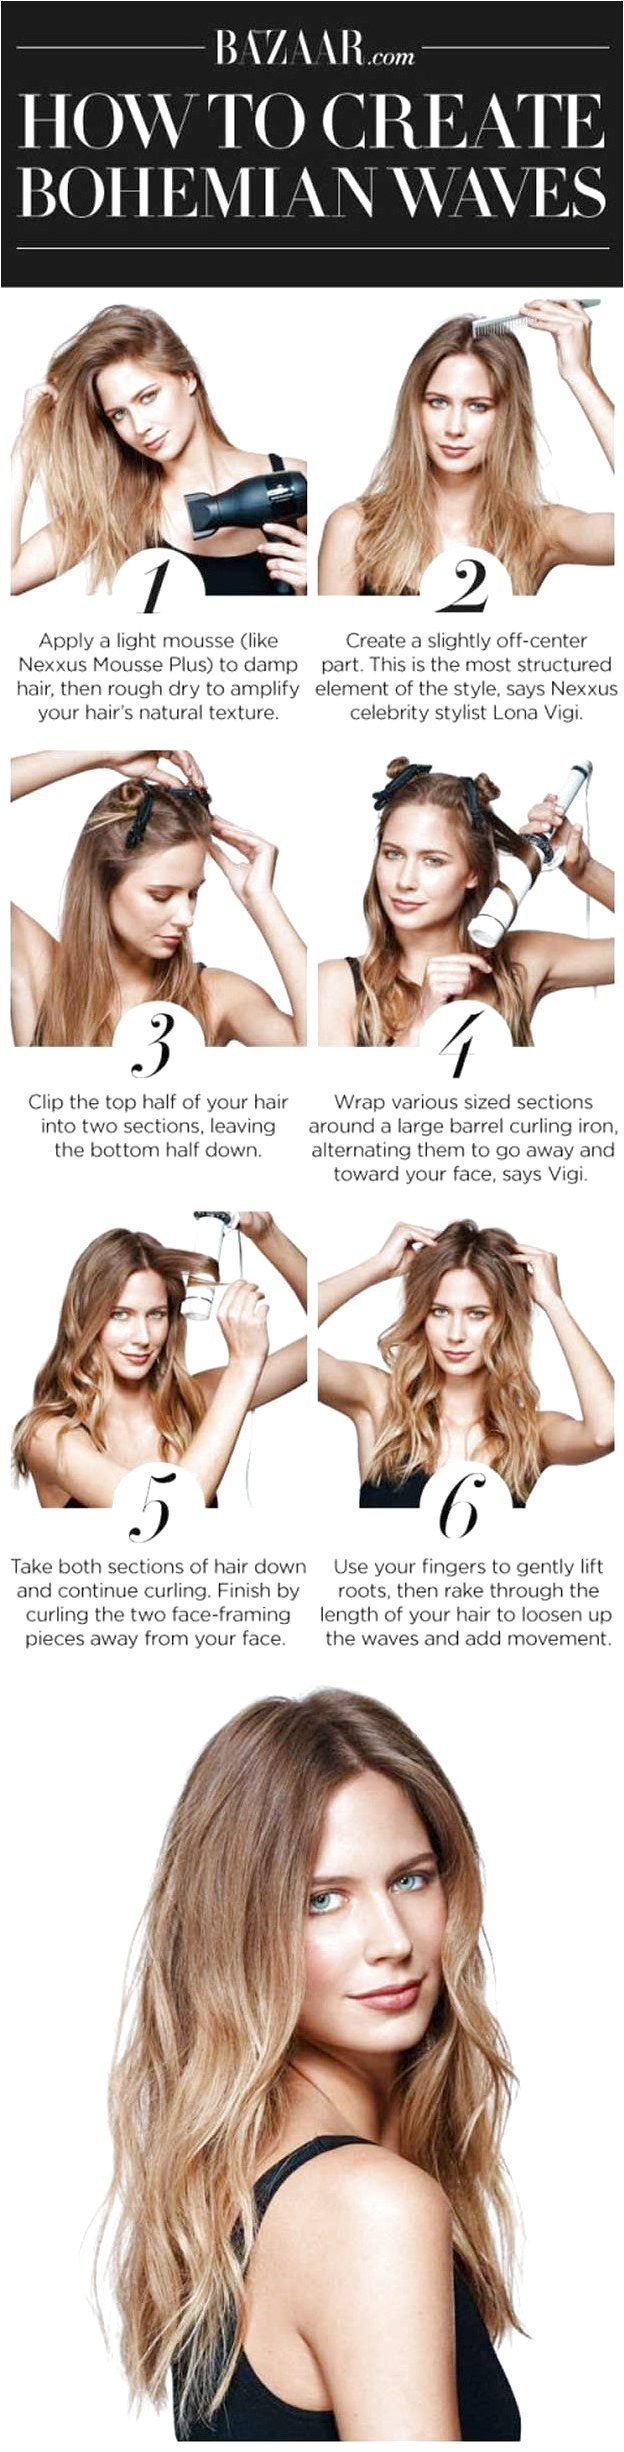 Long Wavy Hairstyles - Step by Step : Boho Waves - Beautiful Long Layered Haircuts And Long Wavy Haircuts With Layers And With Bangs. Half Up Bob Tuto...